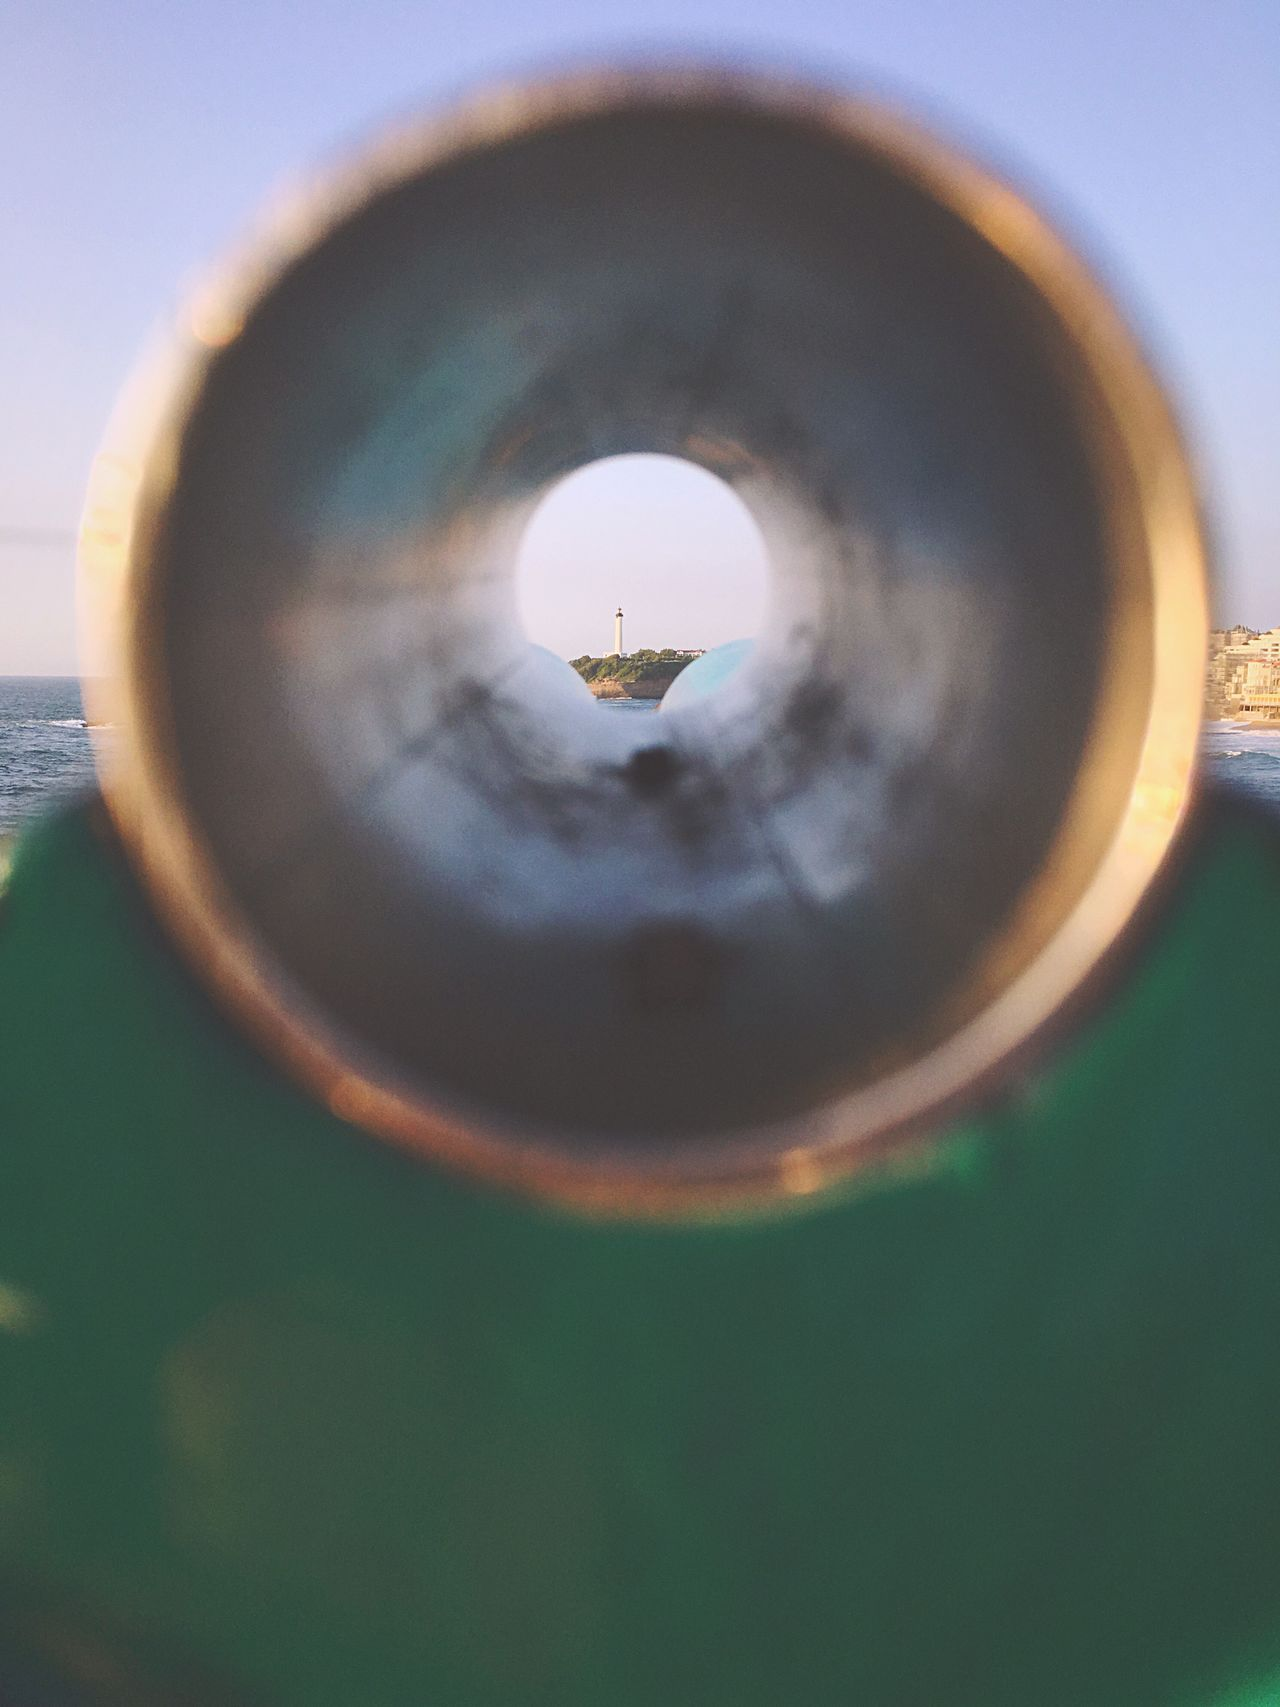 Leading Lines Barrel Tube Lunettes Monocular Lighthouse France Day Vintage No People Summer Outdoors Scenics Far Directional Looking Through Biarritz Green Ocean View Happiness Light And Shadow